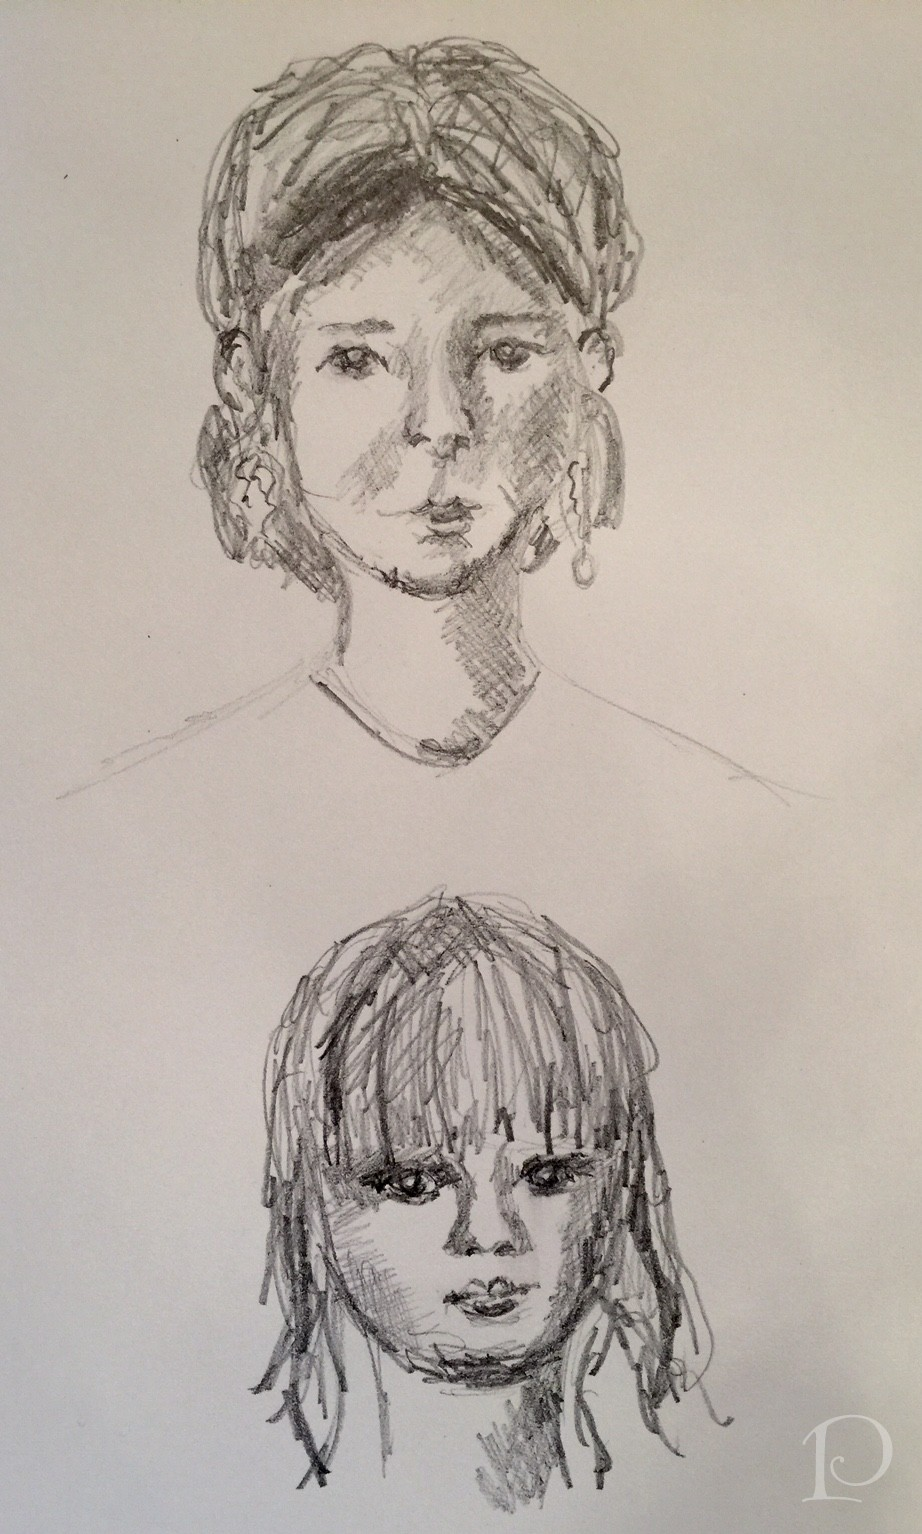 Faces sketches by Pamela Copeman